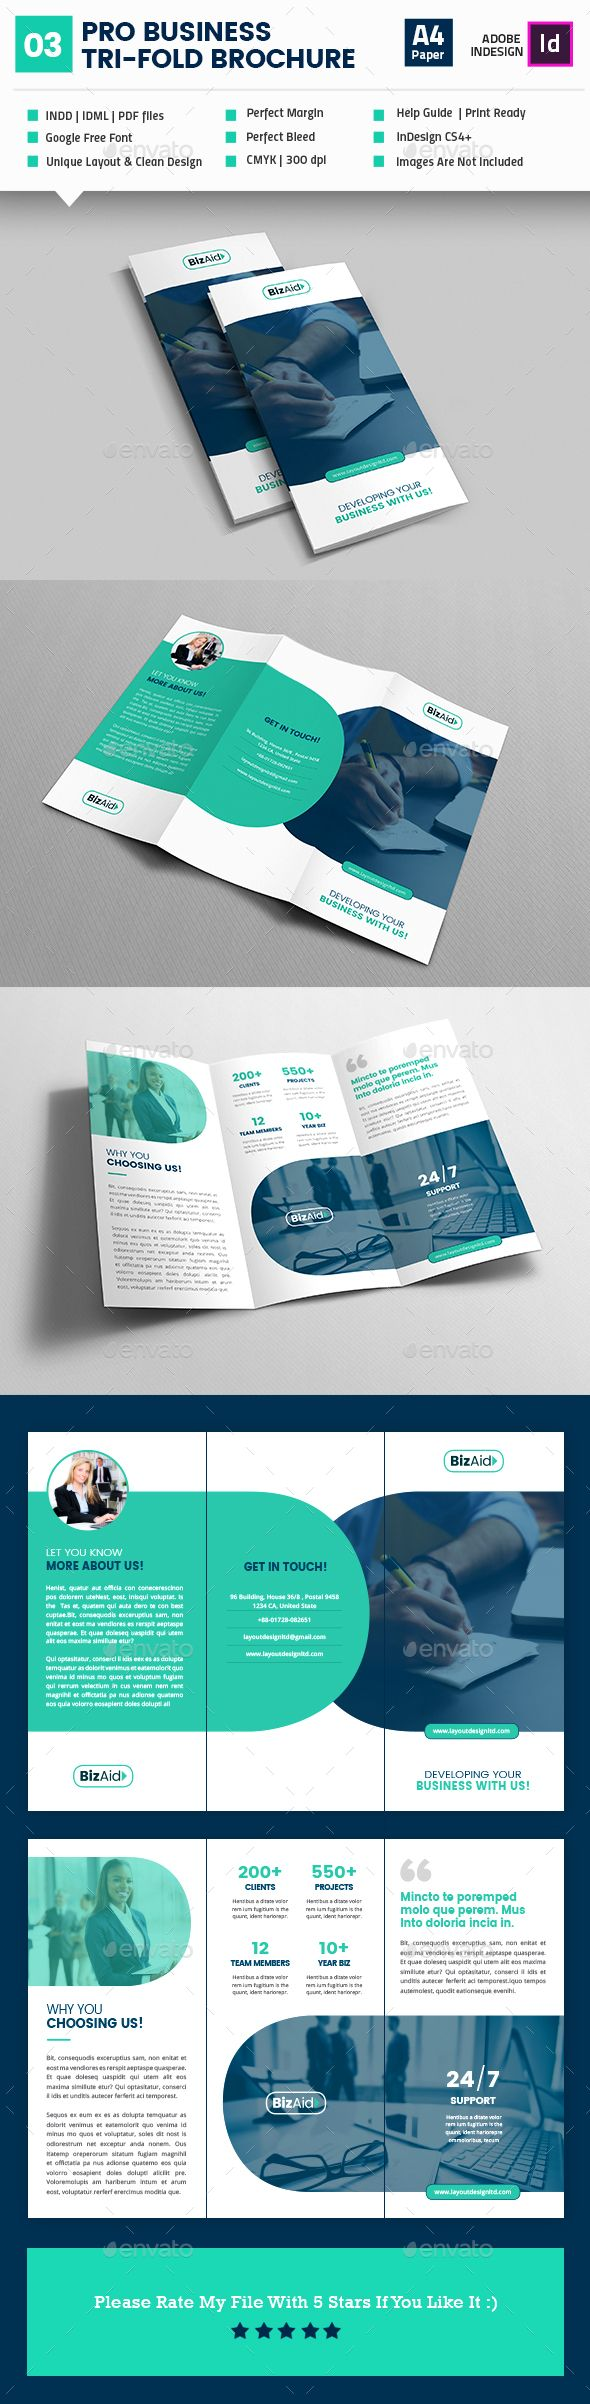 Brochure publicitaire exemple eq35 jornalagora for Meilleures idees creation entreprise